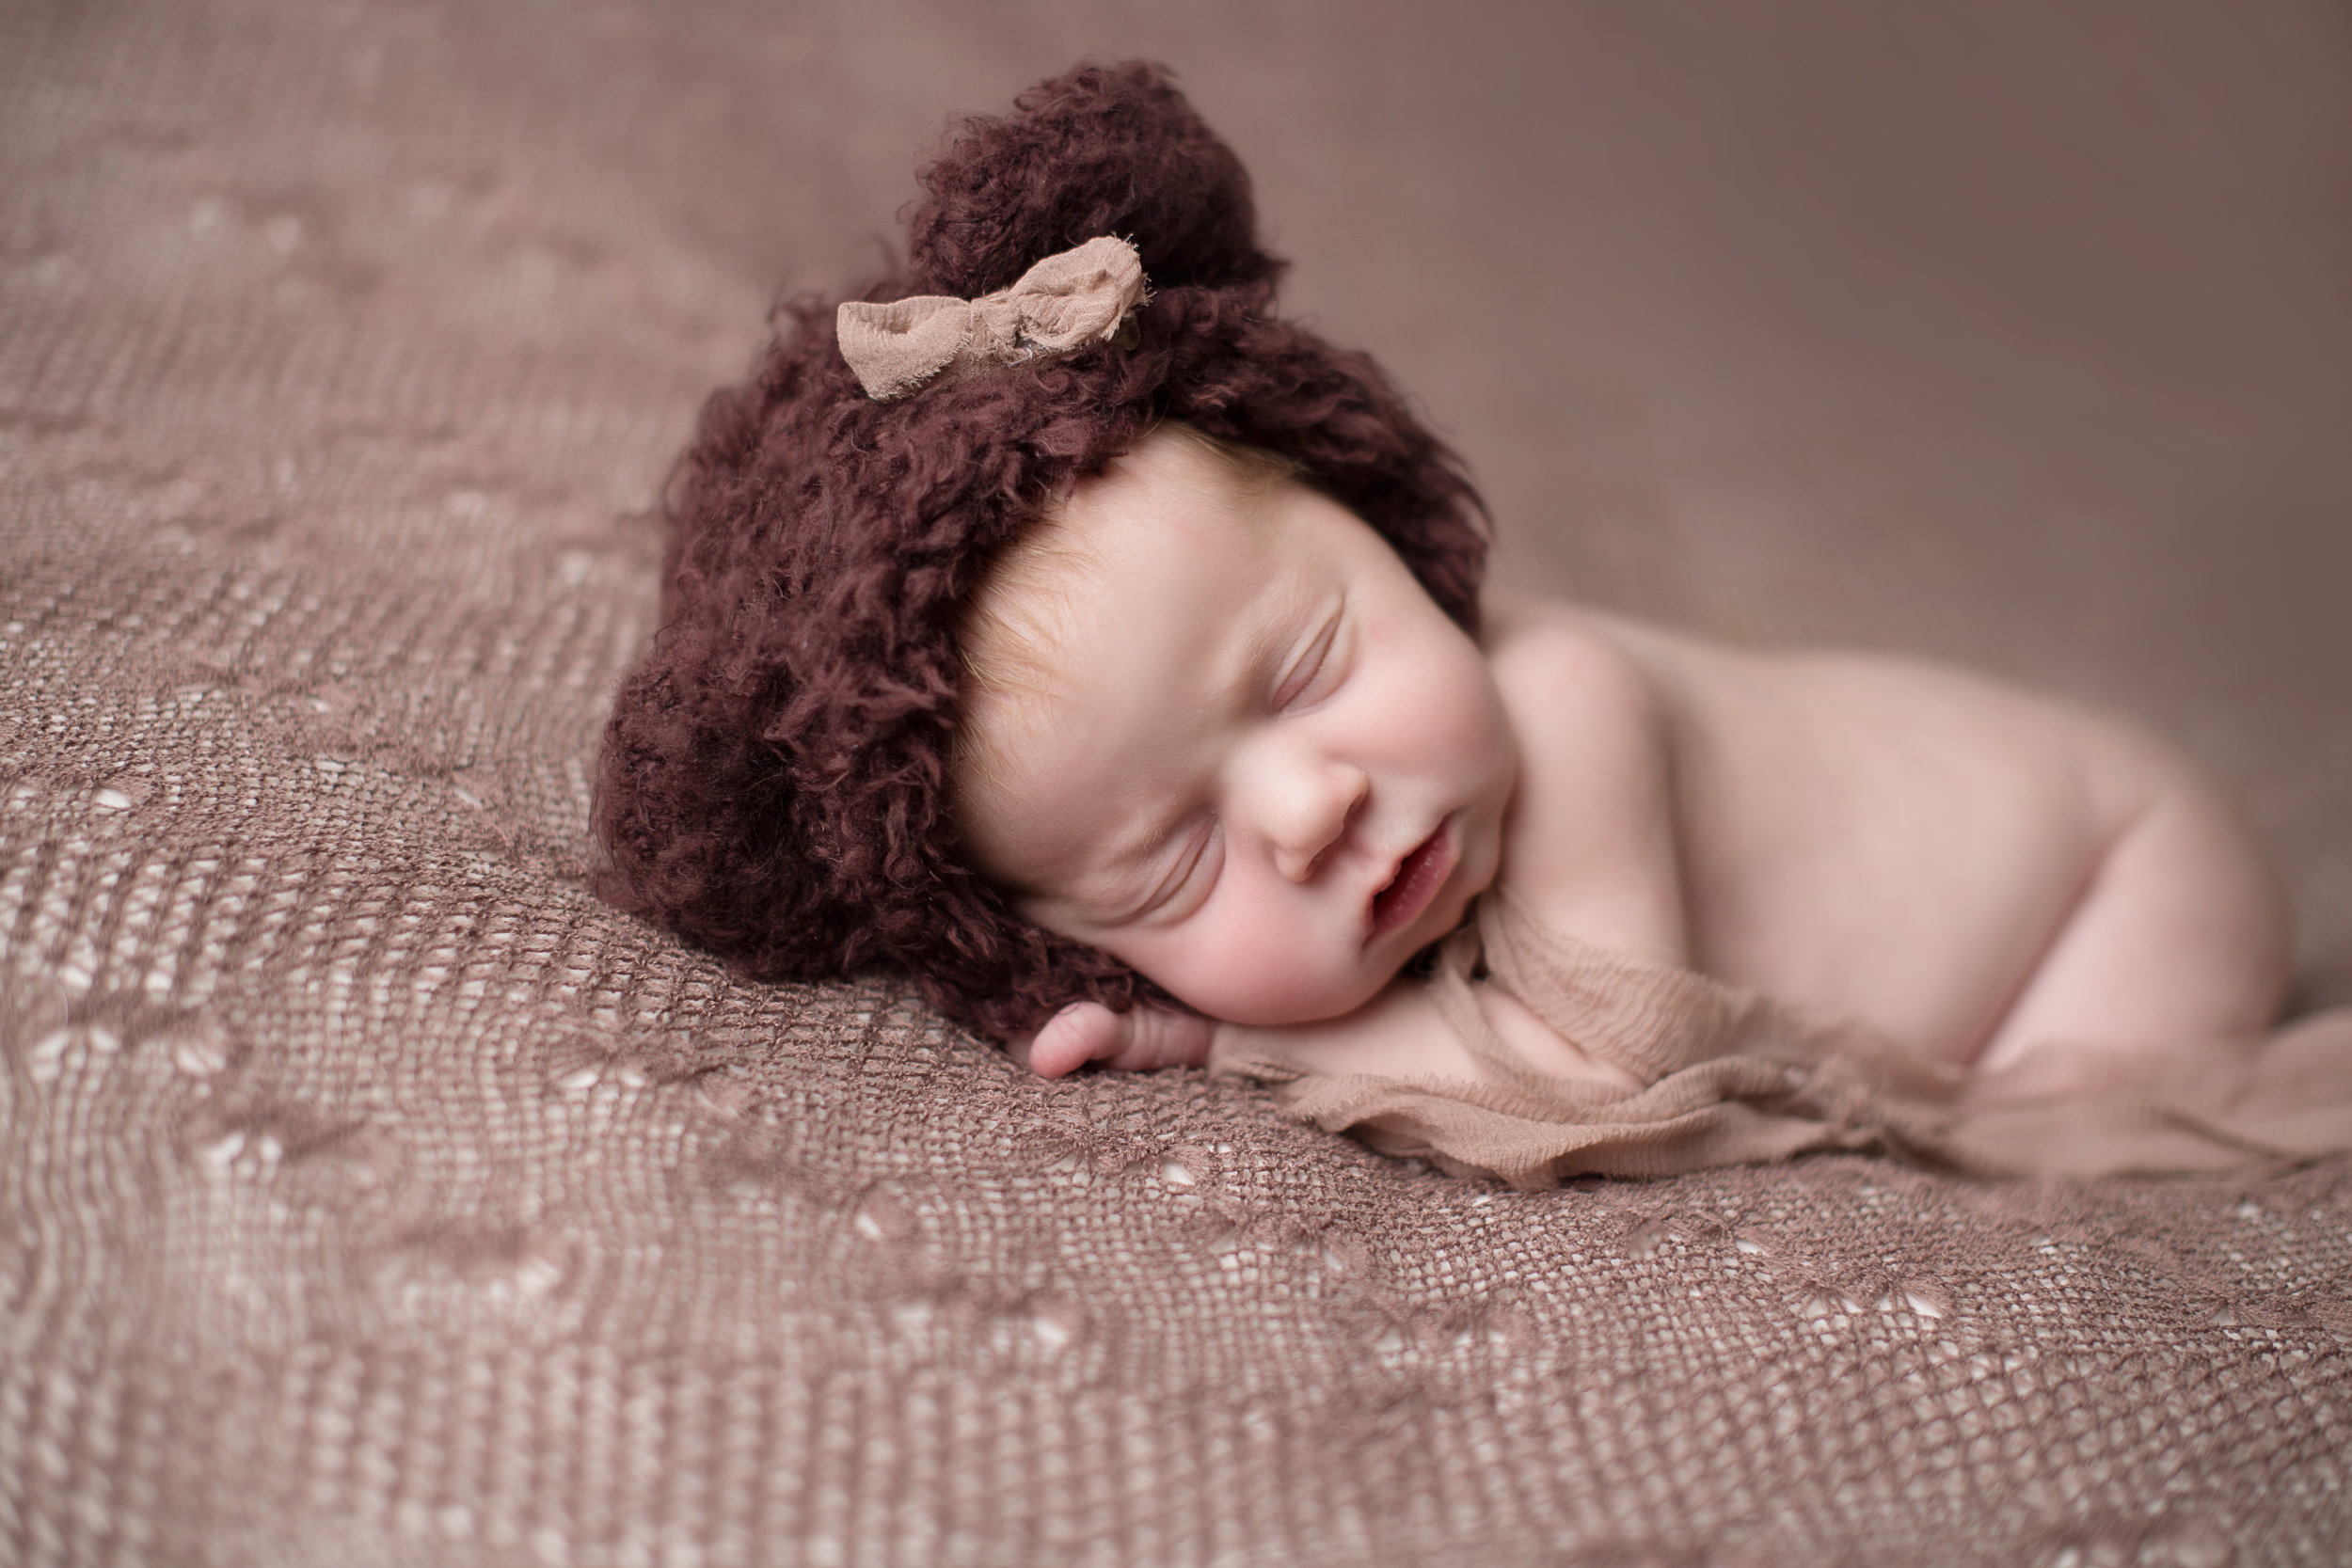 newborn-photographer-billings-montana-bozeman-baby-photography-4053.jpg